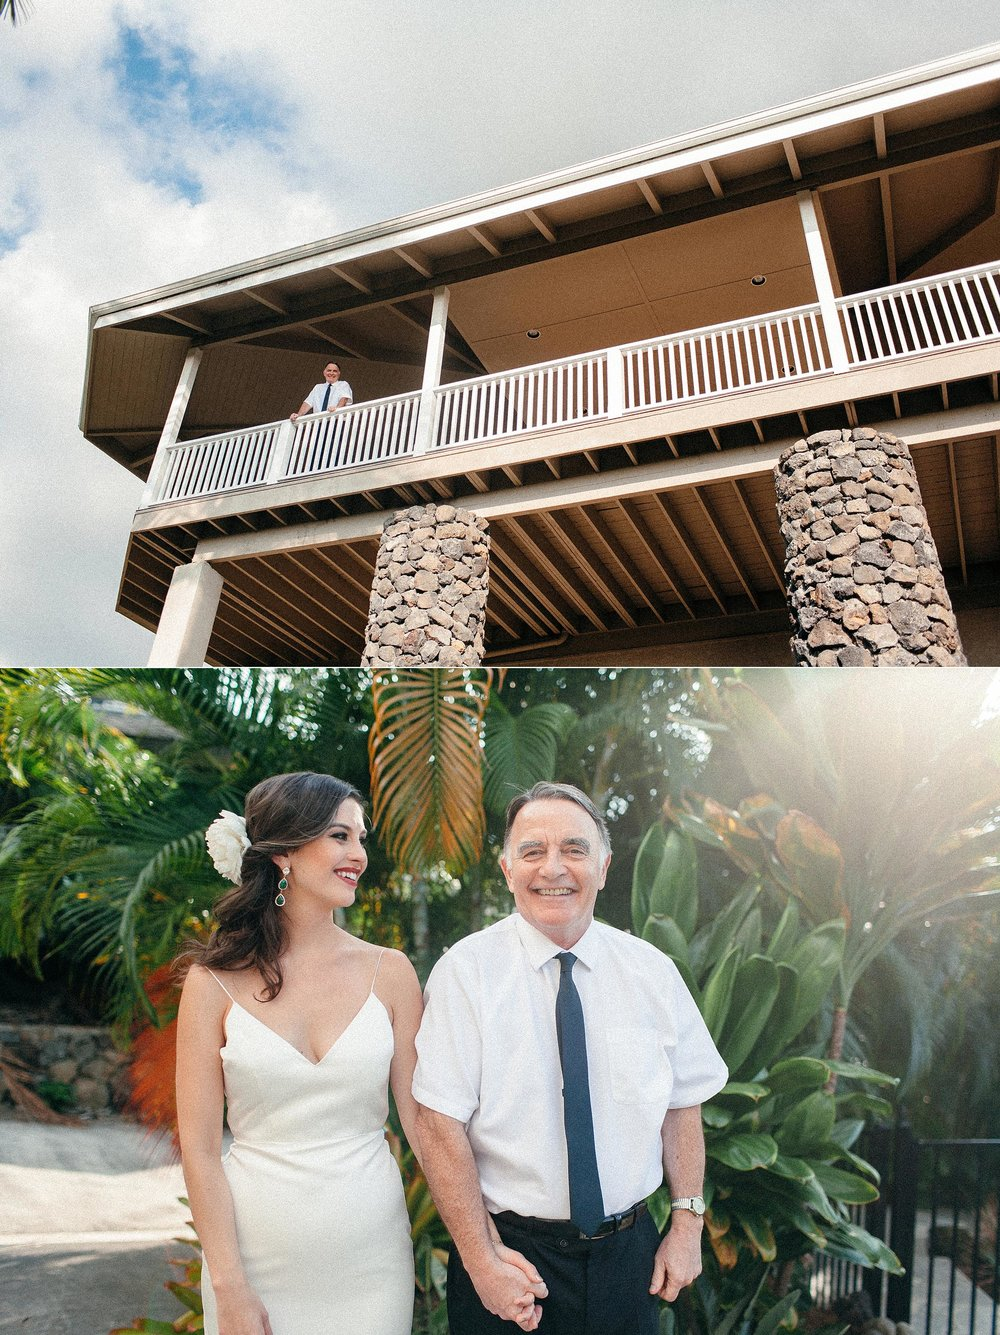 Kona-Big-Island-Hawaii-New-Years-Eve-Wedding-with-Ceremony-at-Living-Stones-Church-and-Reception-at-Daylight-Mind-Coffee_0007.jpg